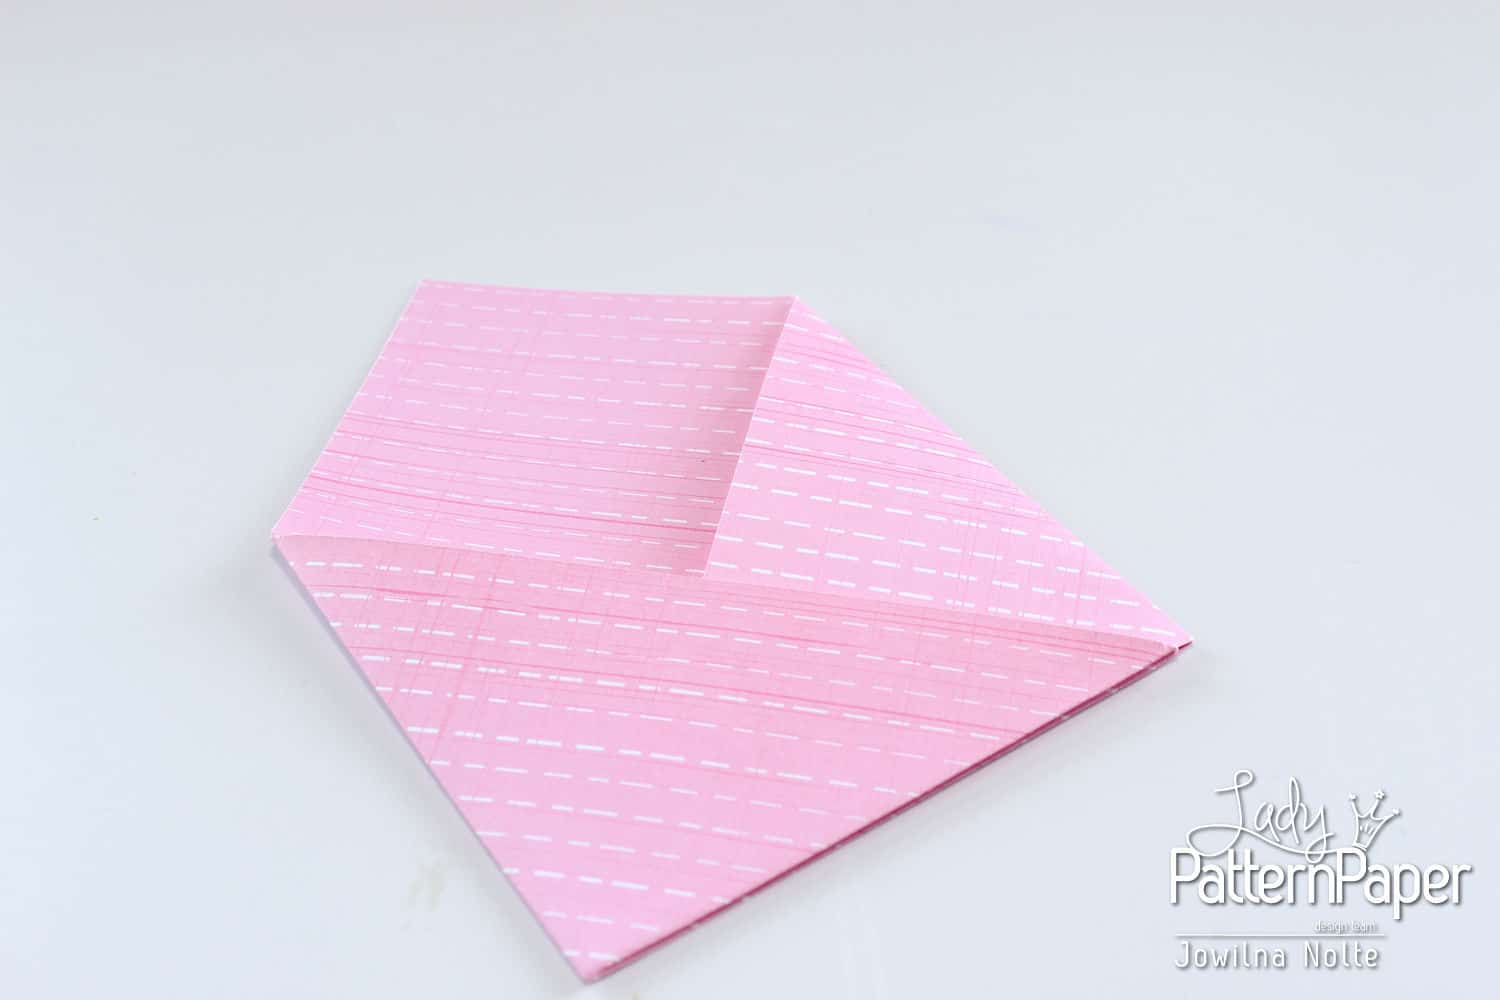 Pocket Envelopes - Step 4